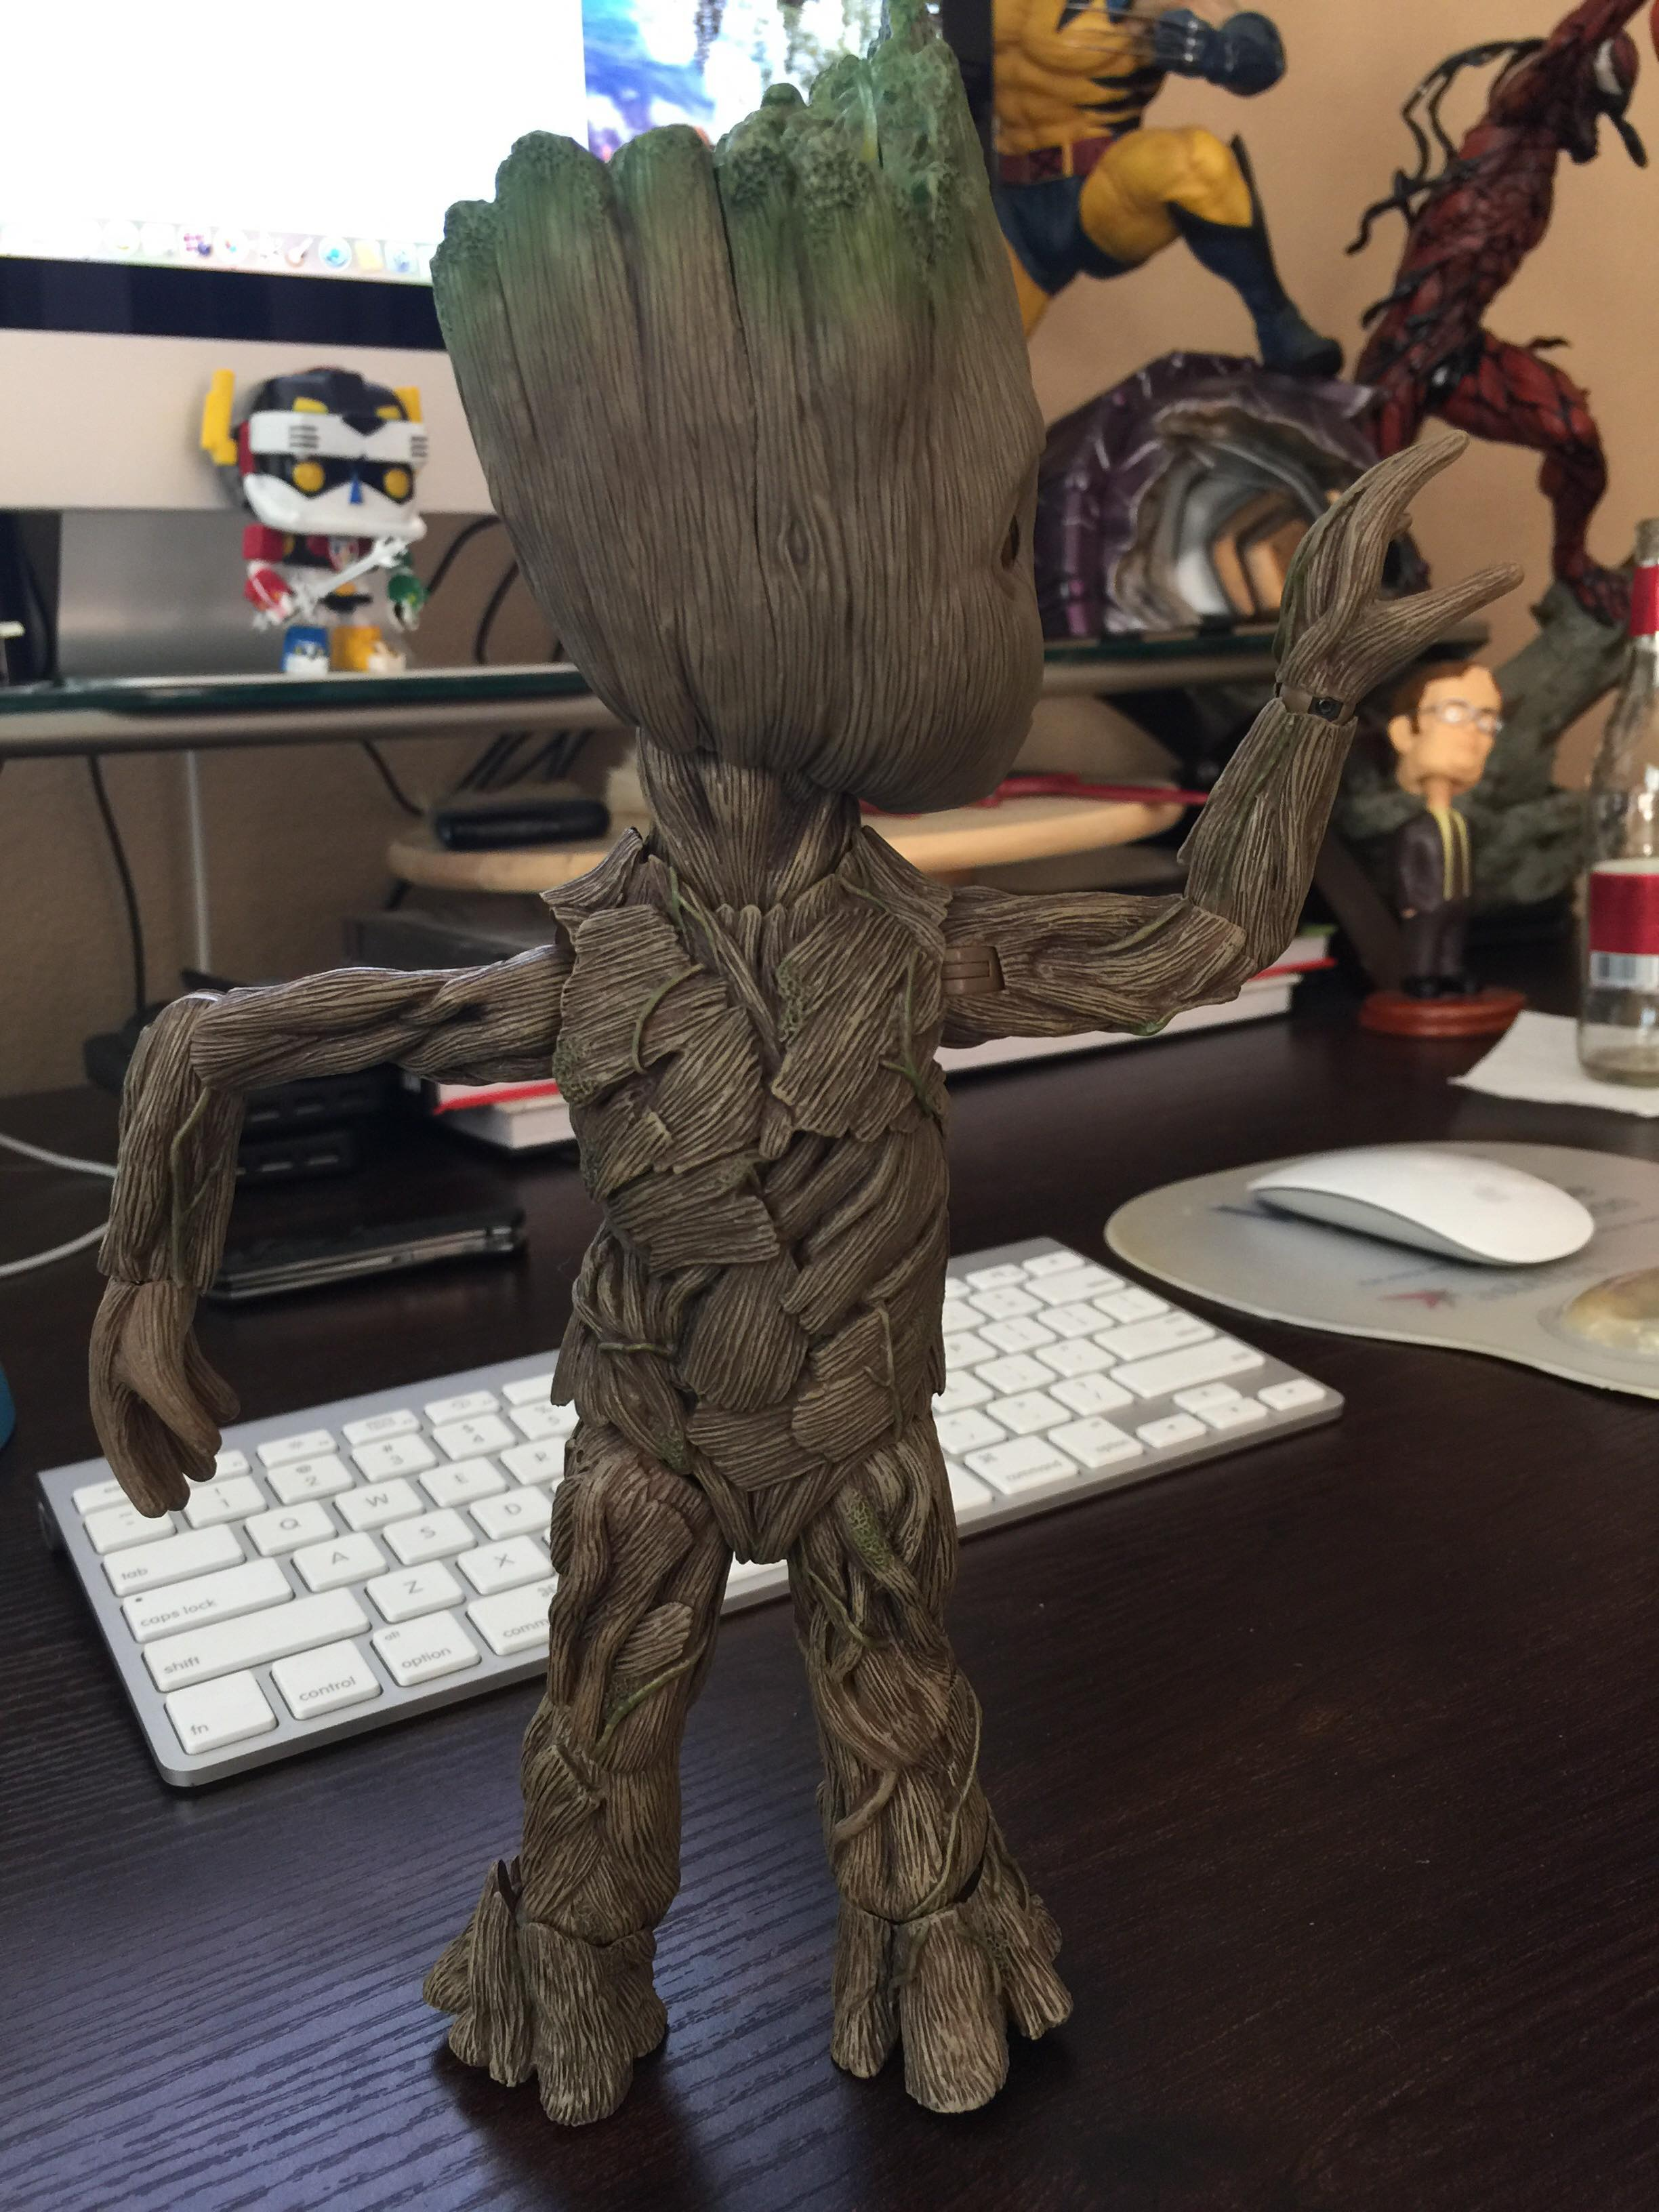 Hot Toys Life Size Baby Groot Figure Review Amp Photos Marvel Toy News